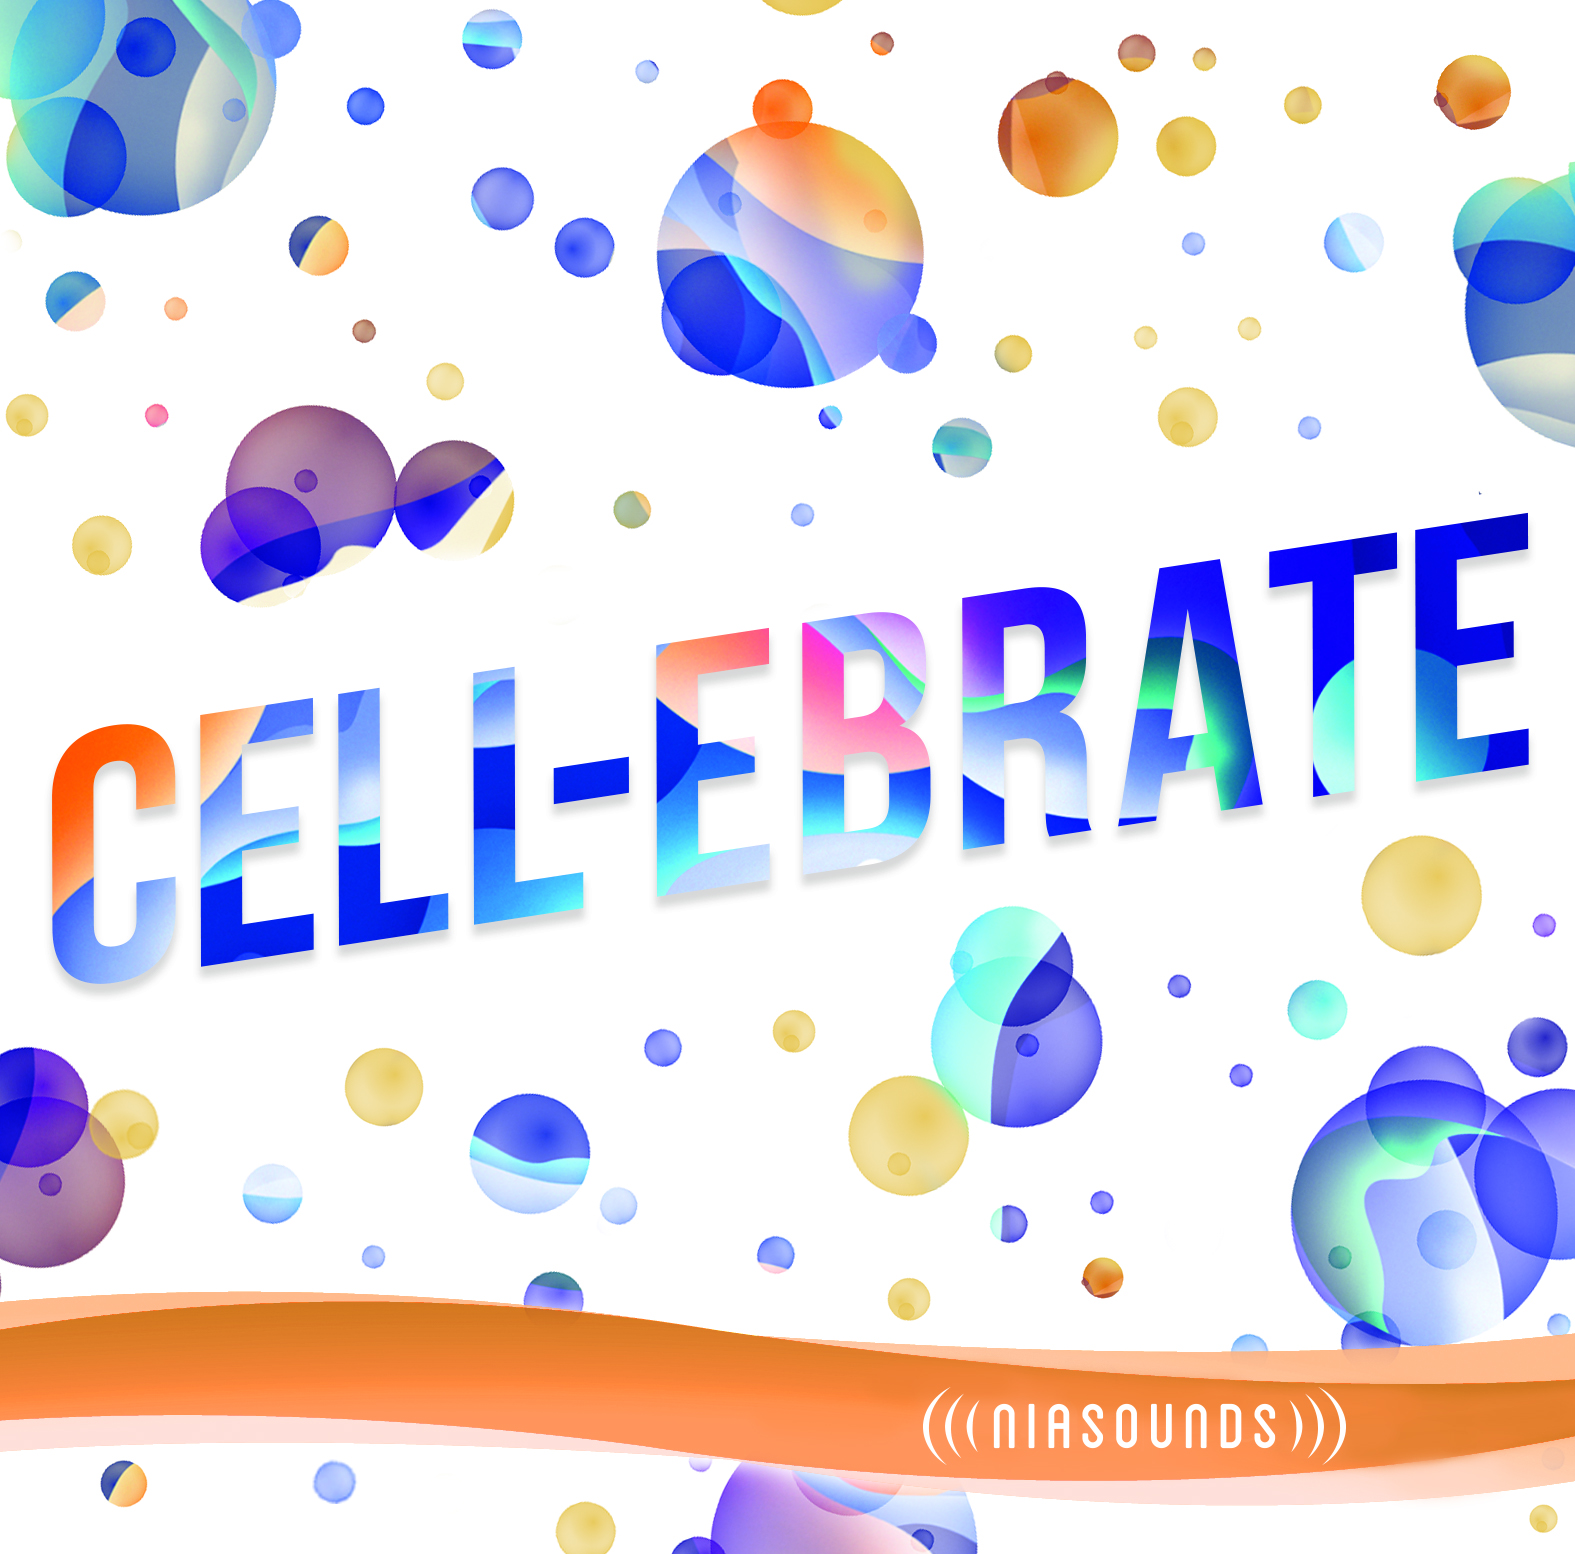 CELL-ebrate